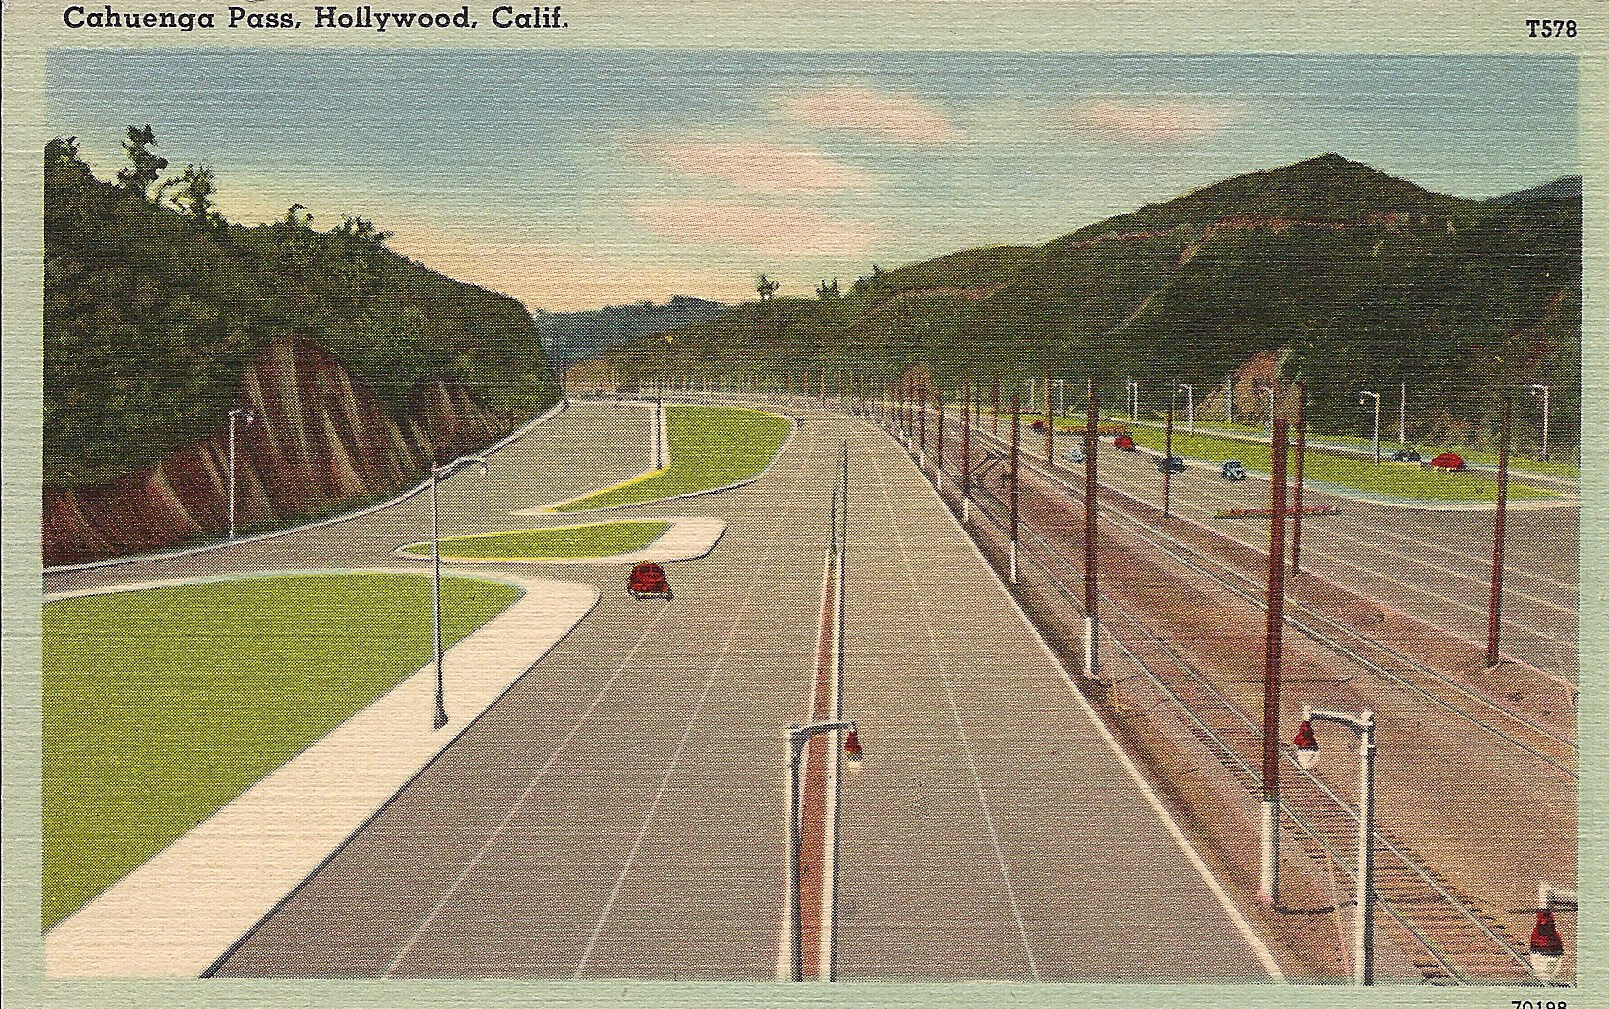 The Cahuenga Pass Parkway in its earliest days